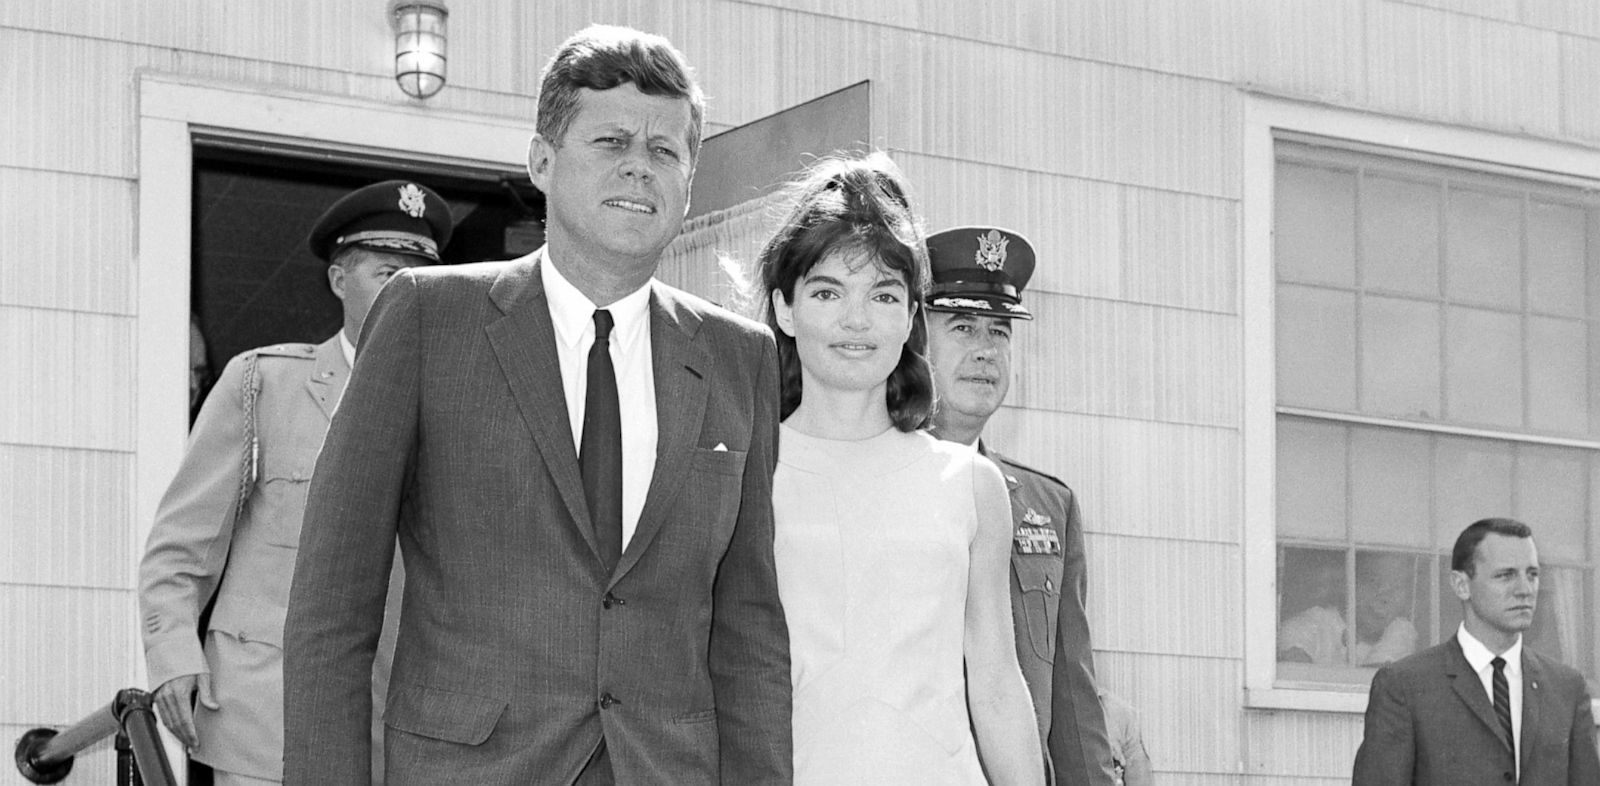 PHOTO: John F. Kennedy with his wife Jackie as they leave the Otis Air Force Base hospital